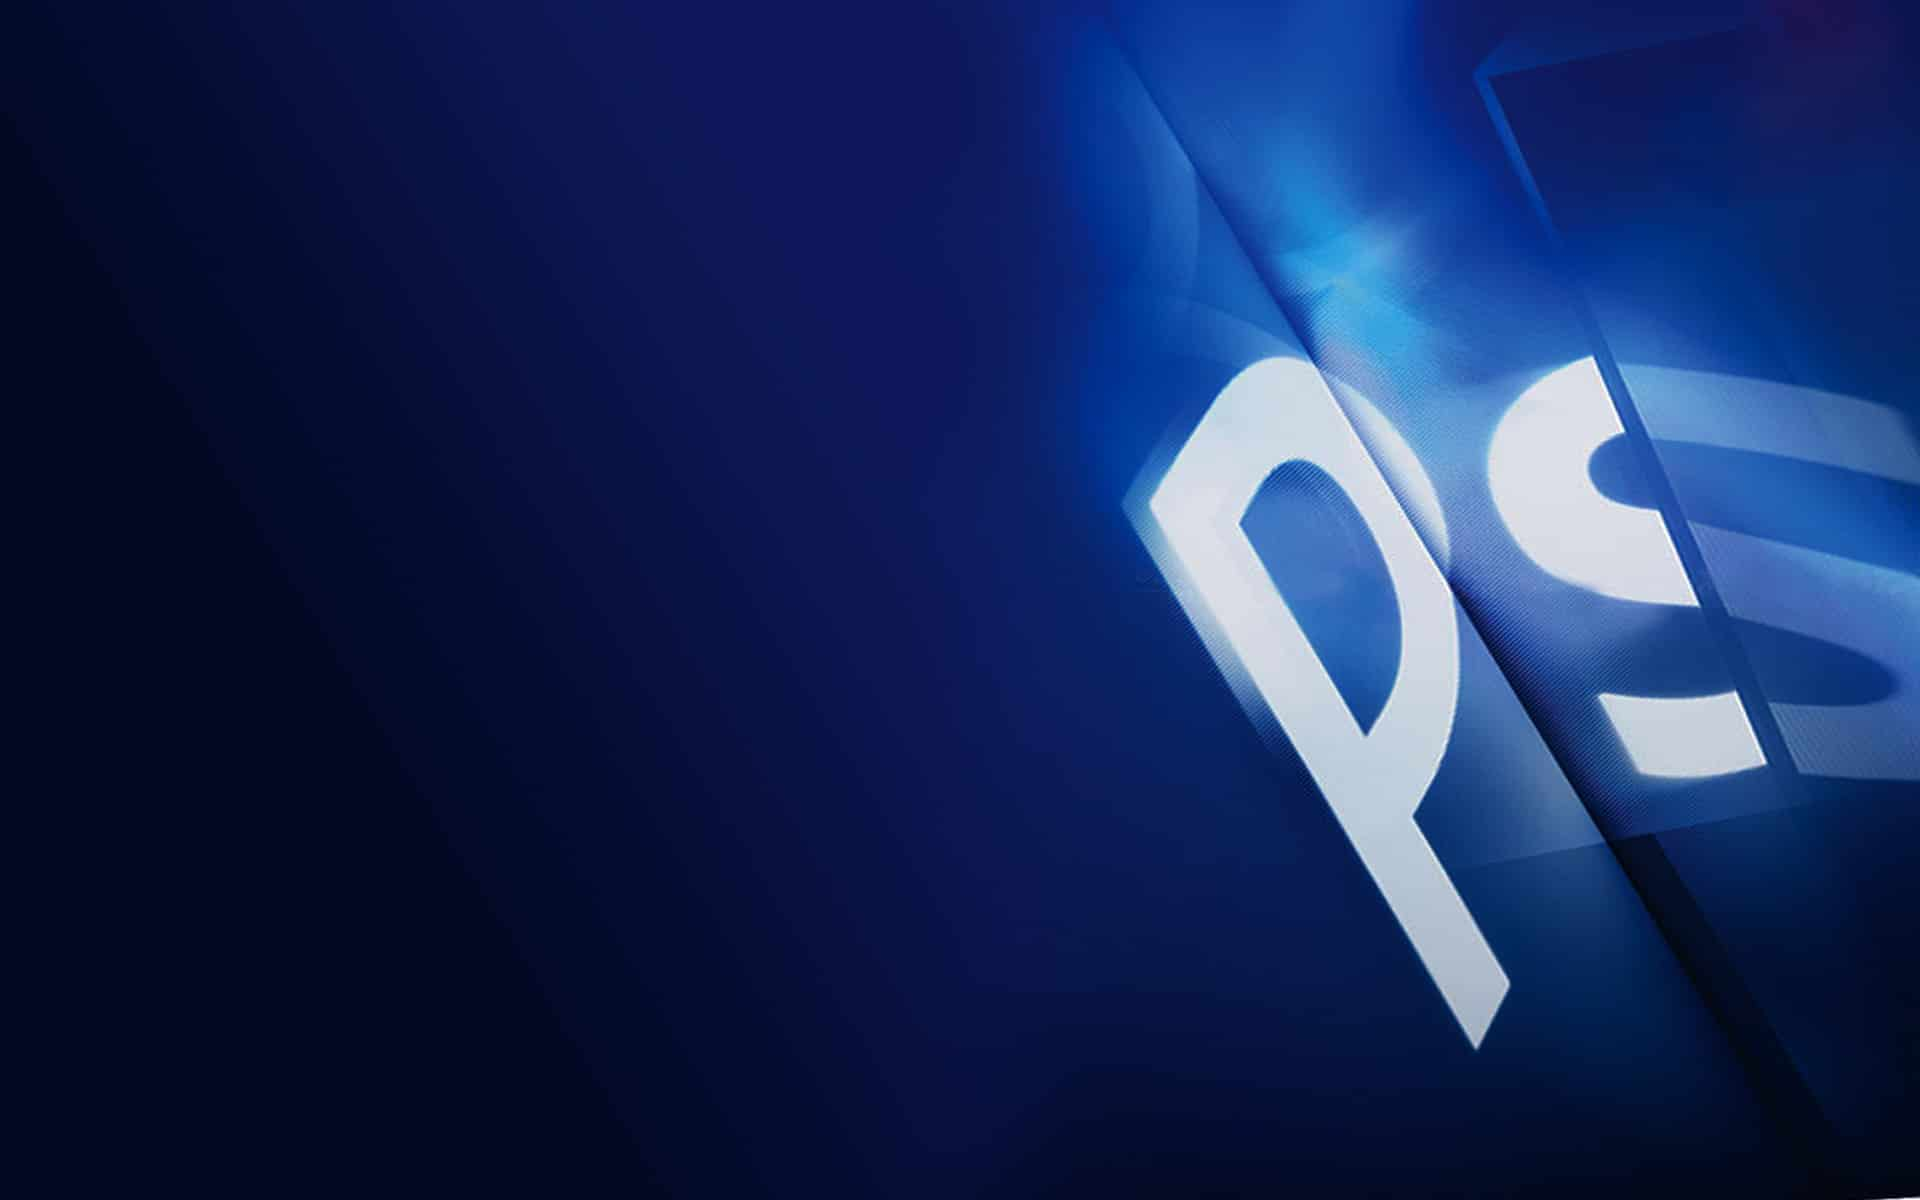 Adobe-Photoshop-Cs5-Wide-Screen-Desktop-Wallpaper